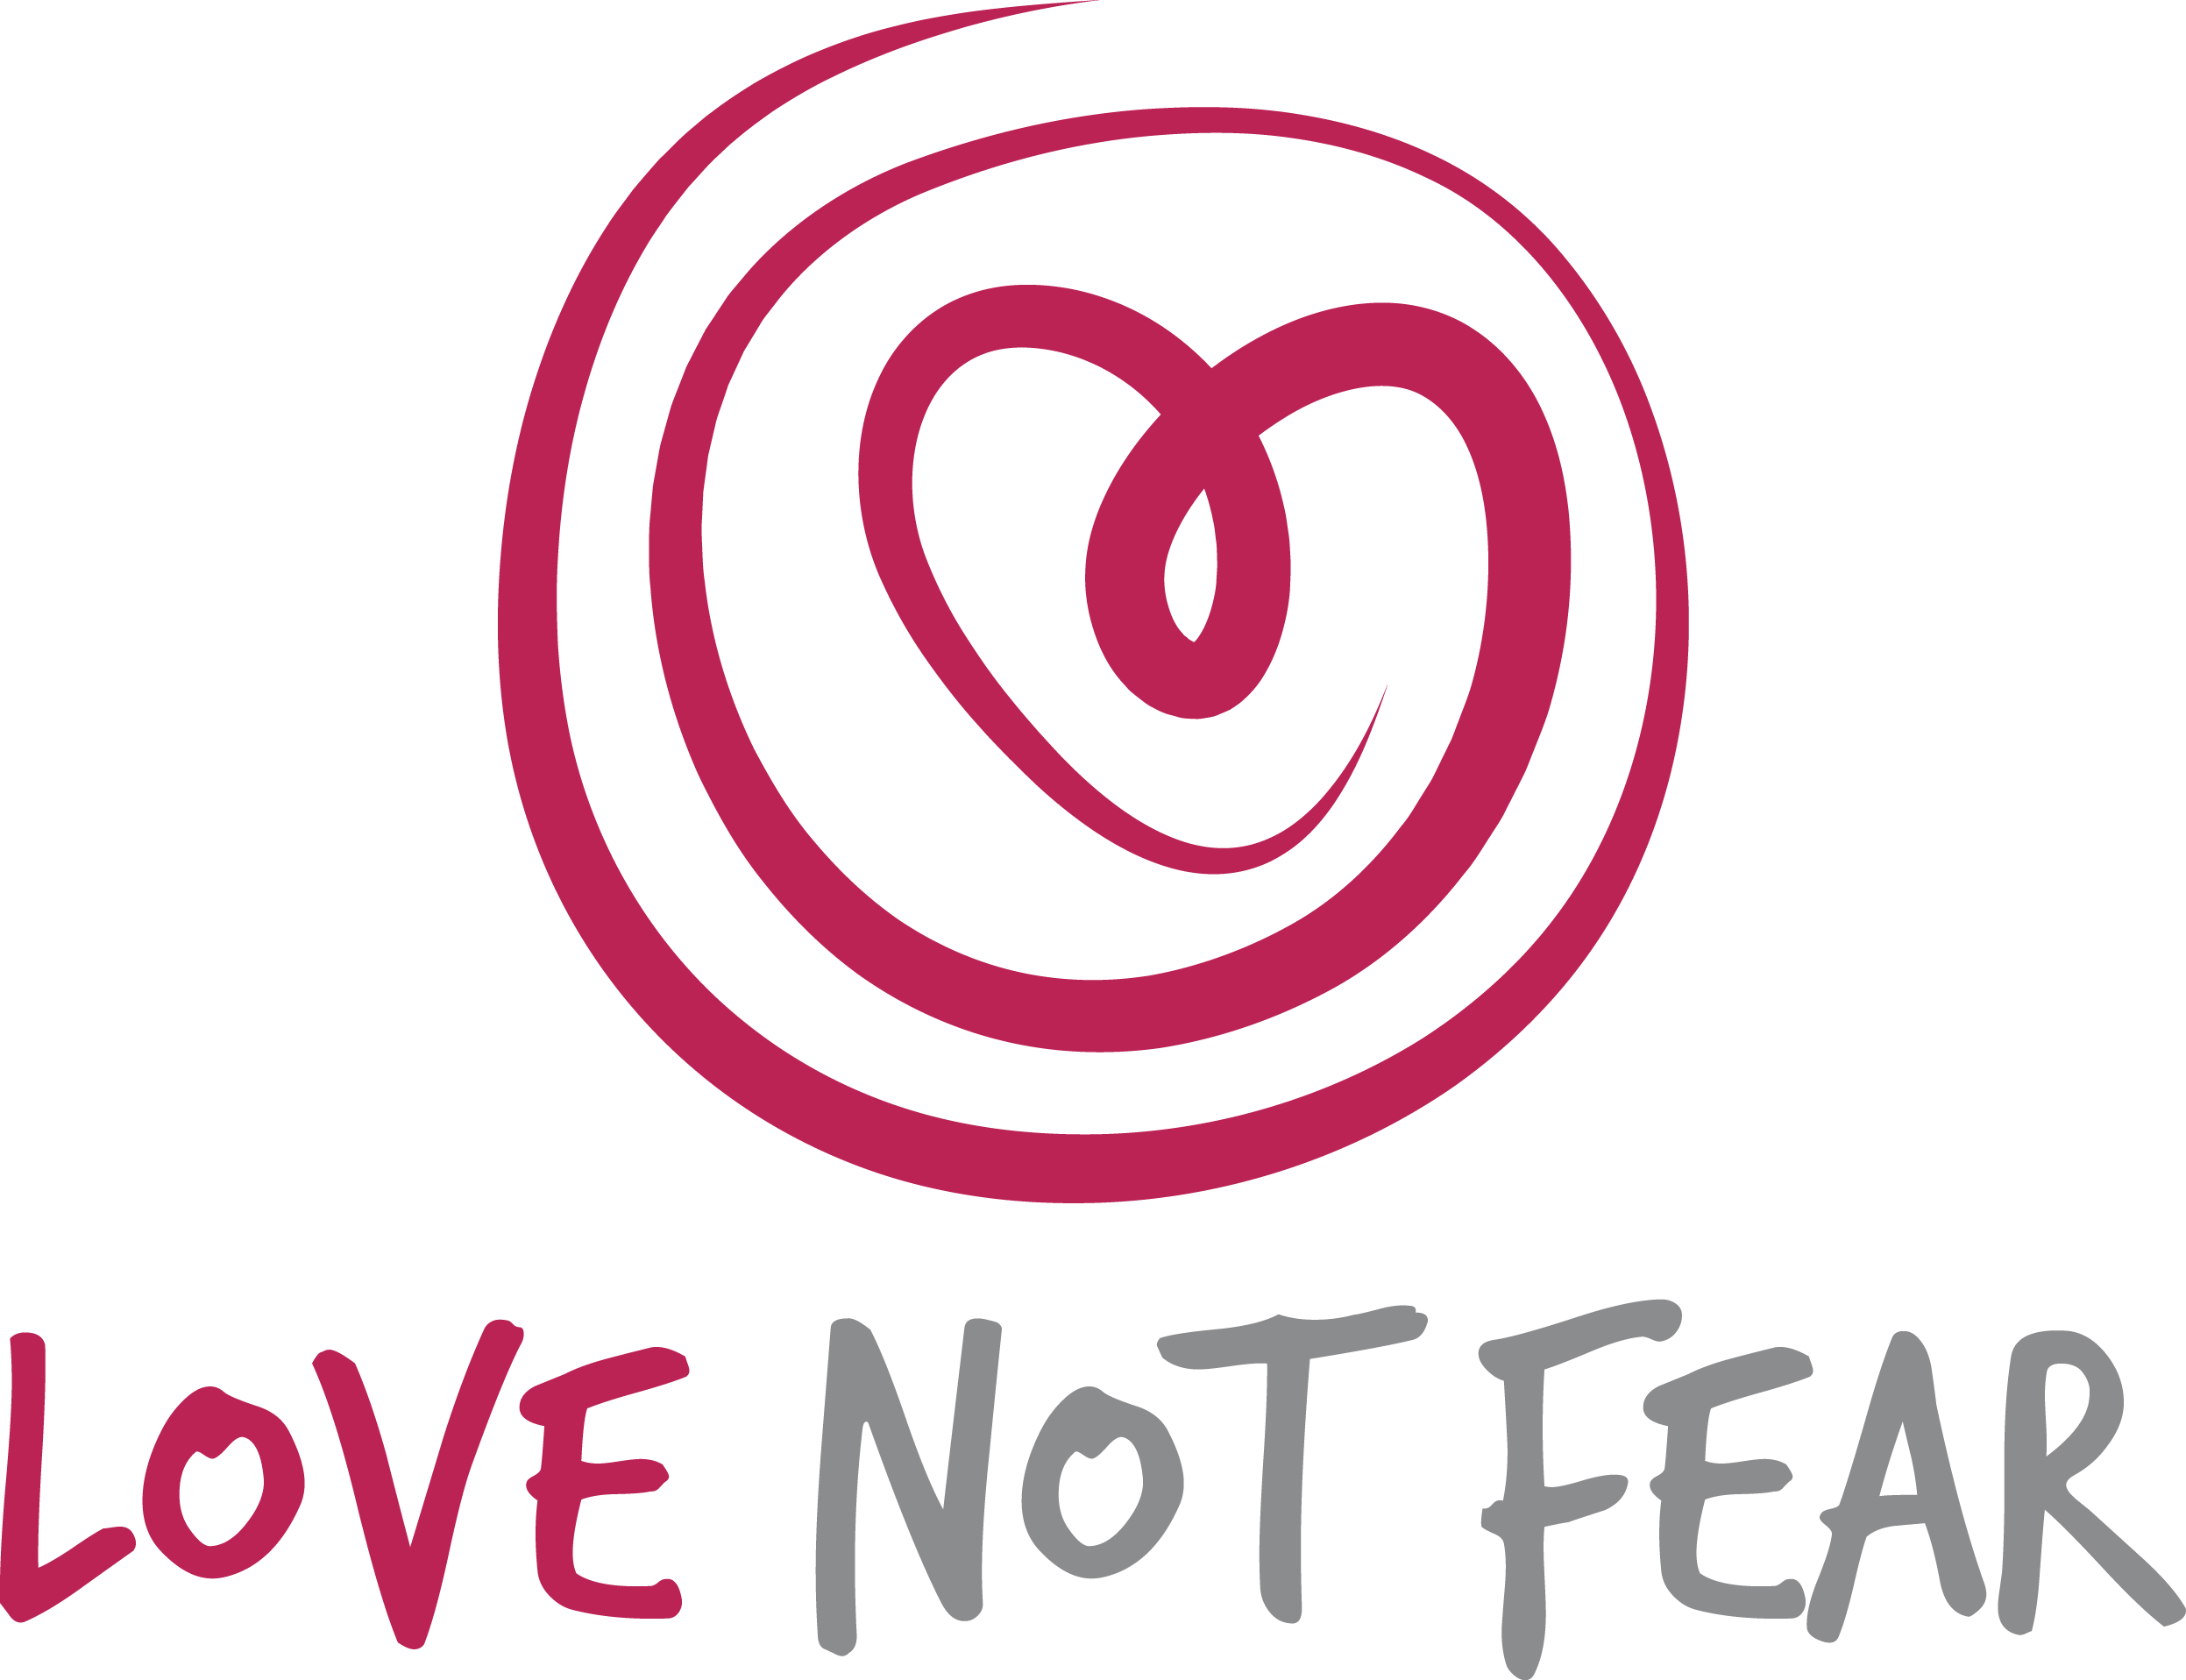 Design a logo for Love Not Fear